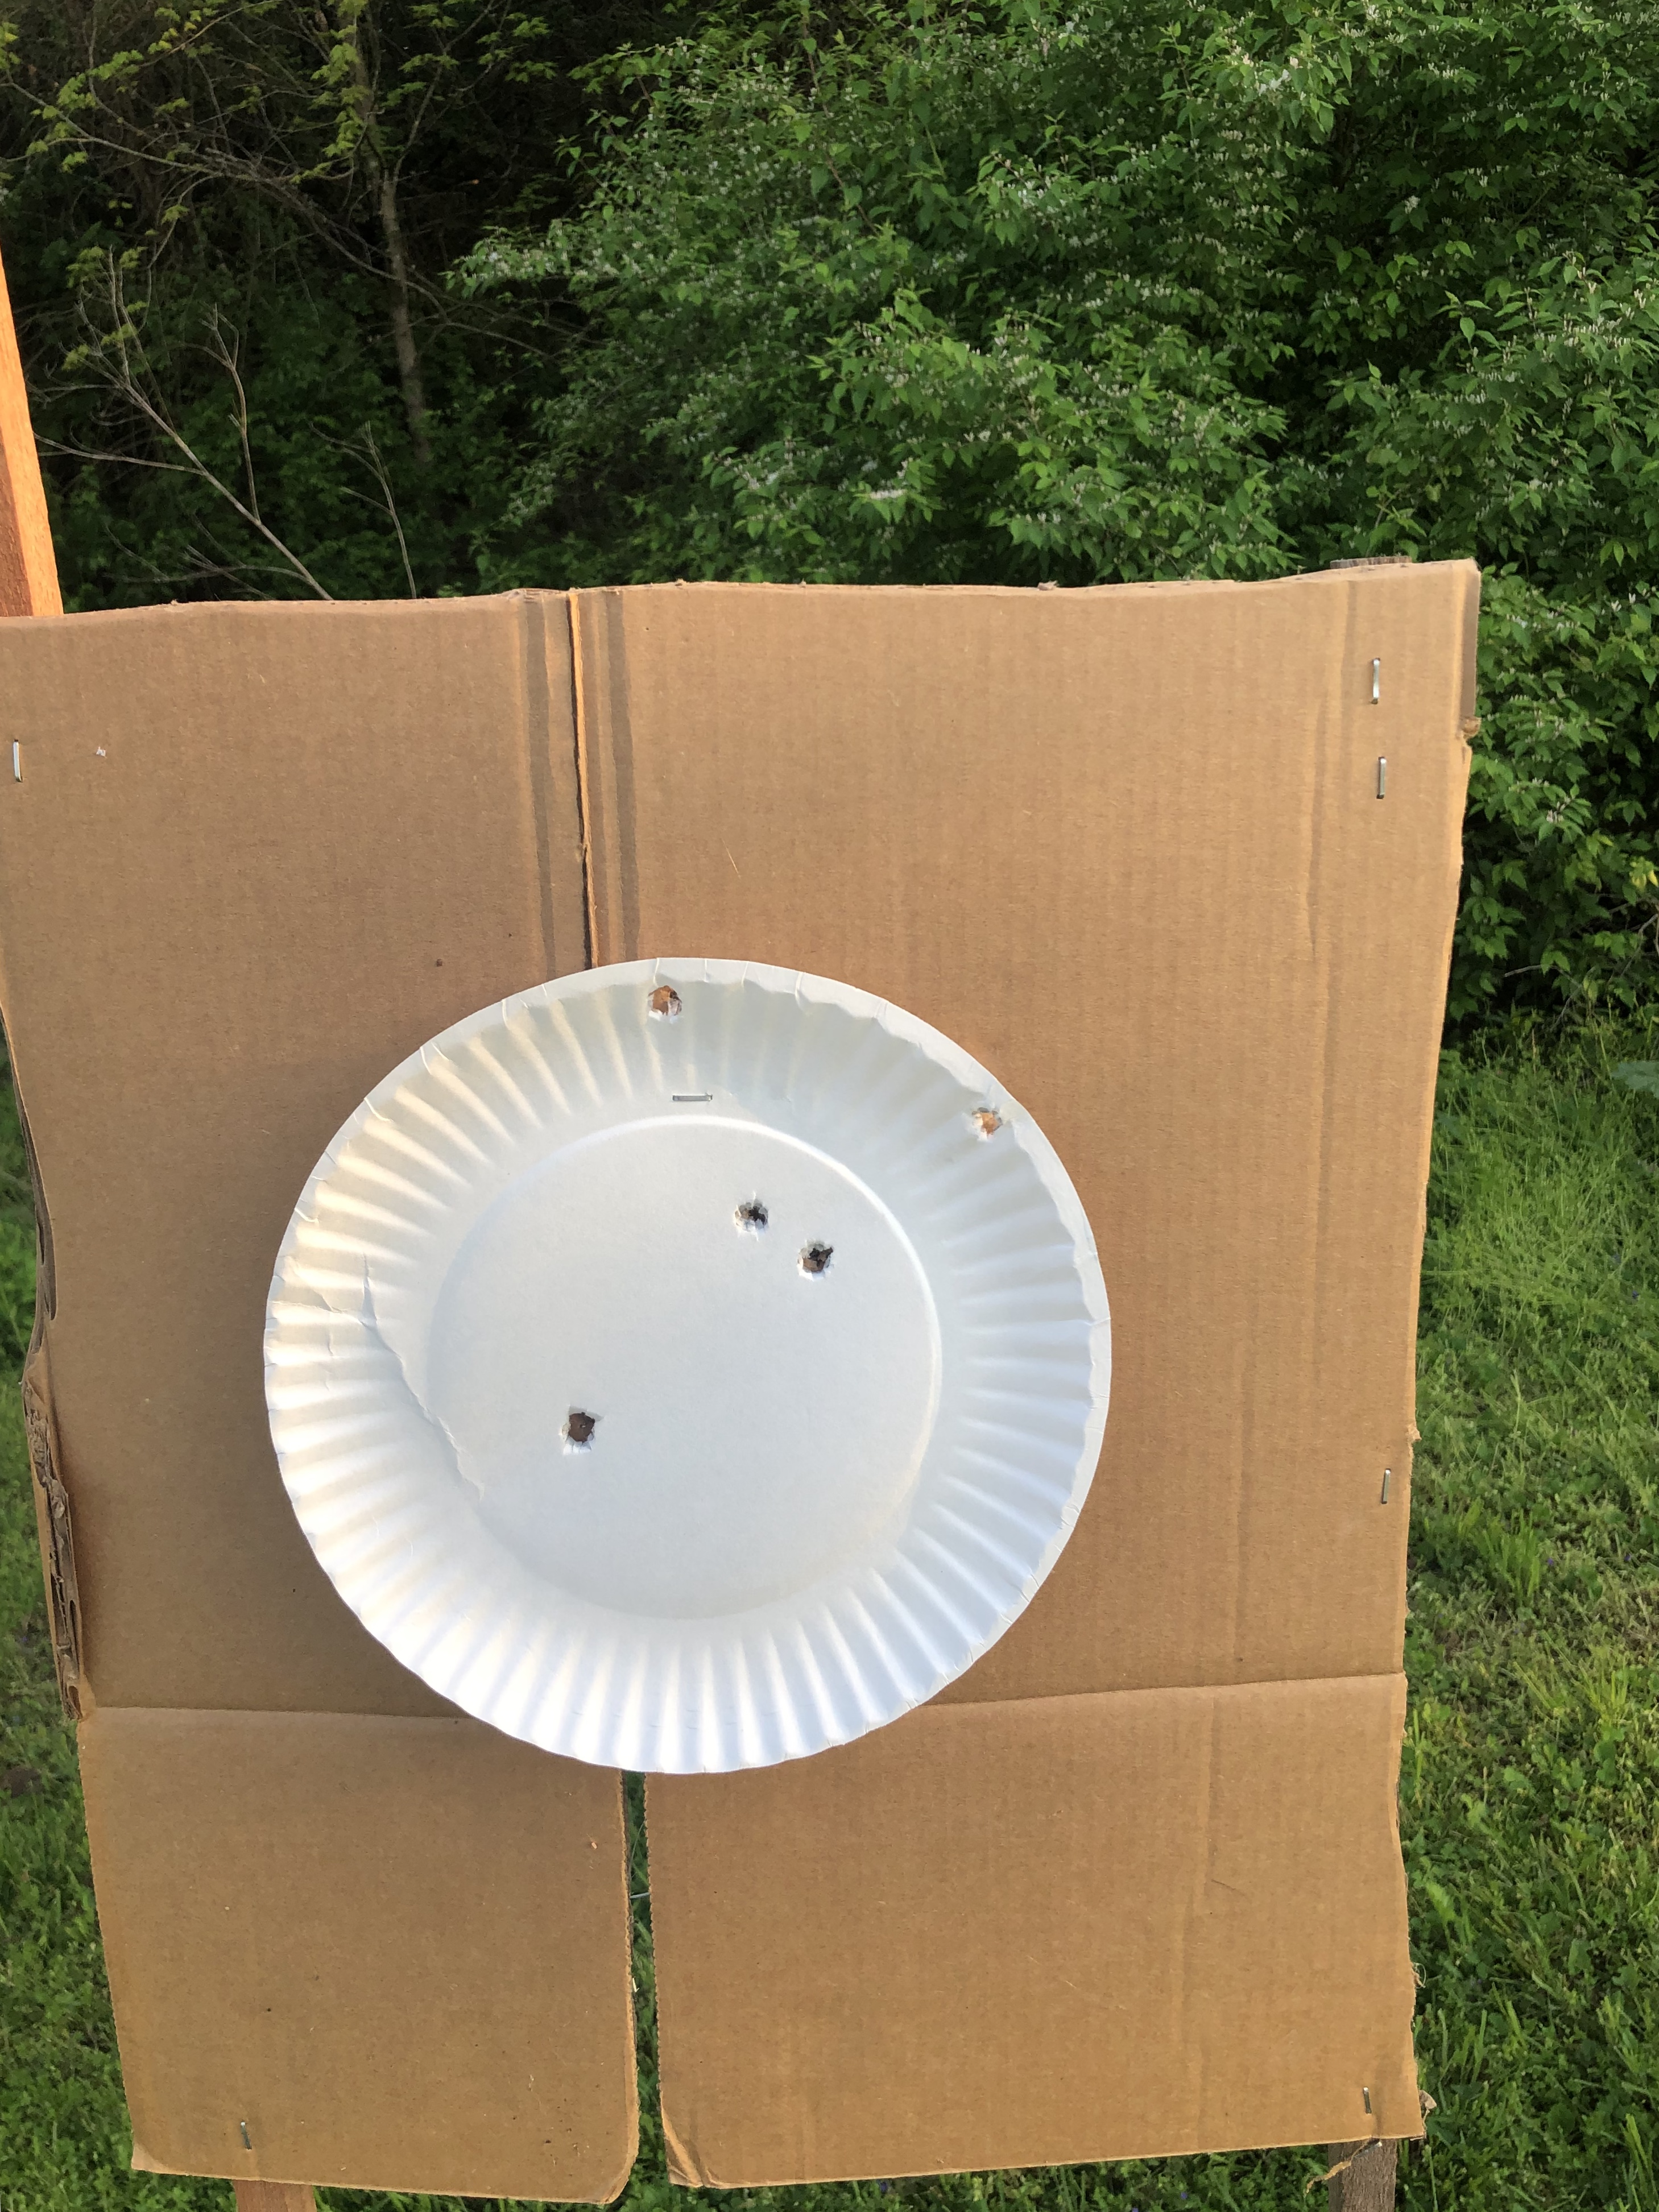 Draw practice from concealed at 12 feet, 2 threats, front sight focus-ee7a3513-429c-478f-87d7-b8dd93e32c1d.jpeg